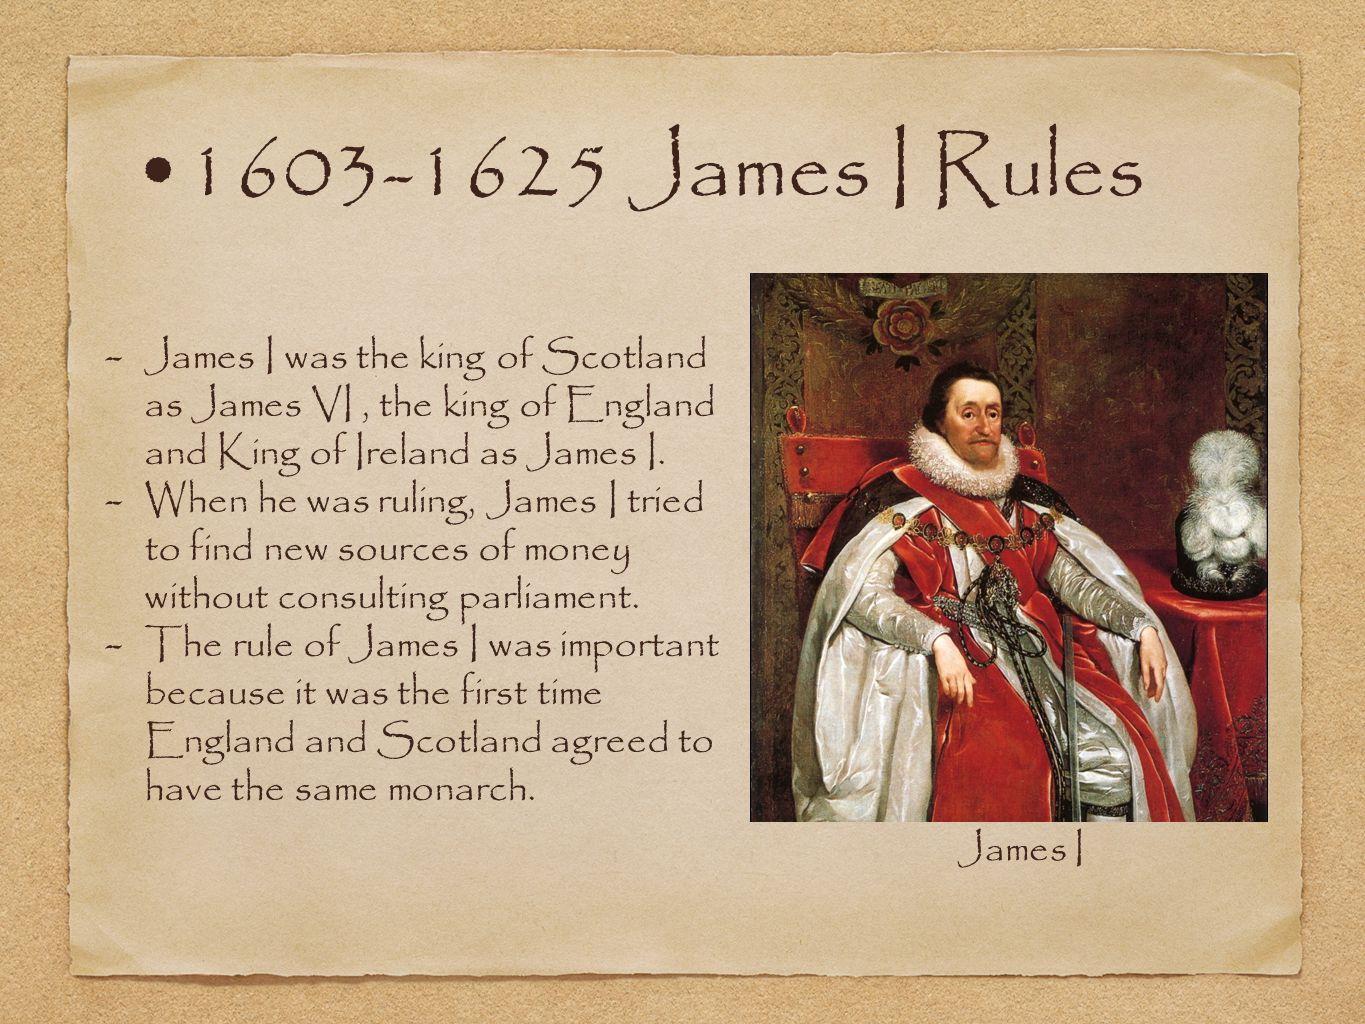 1603-1625 James I Rules - James I was the king of Scotland as James VI, the king of England and King of Ireland as James I. - When he was ruling, Jame